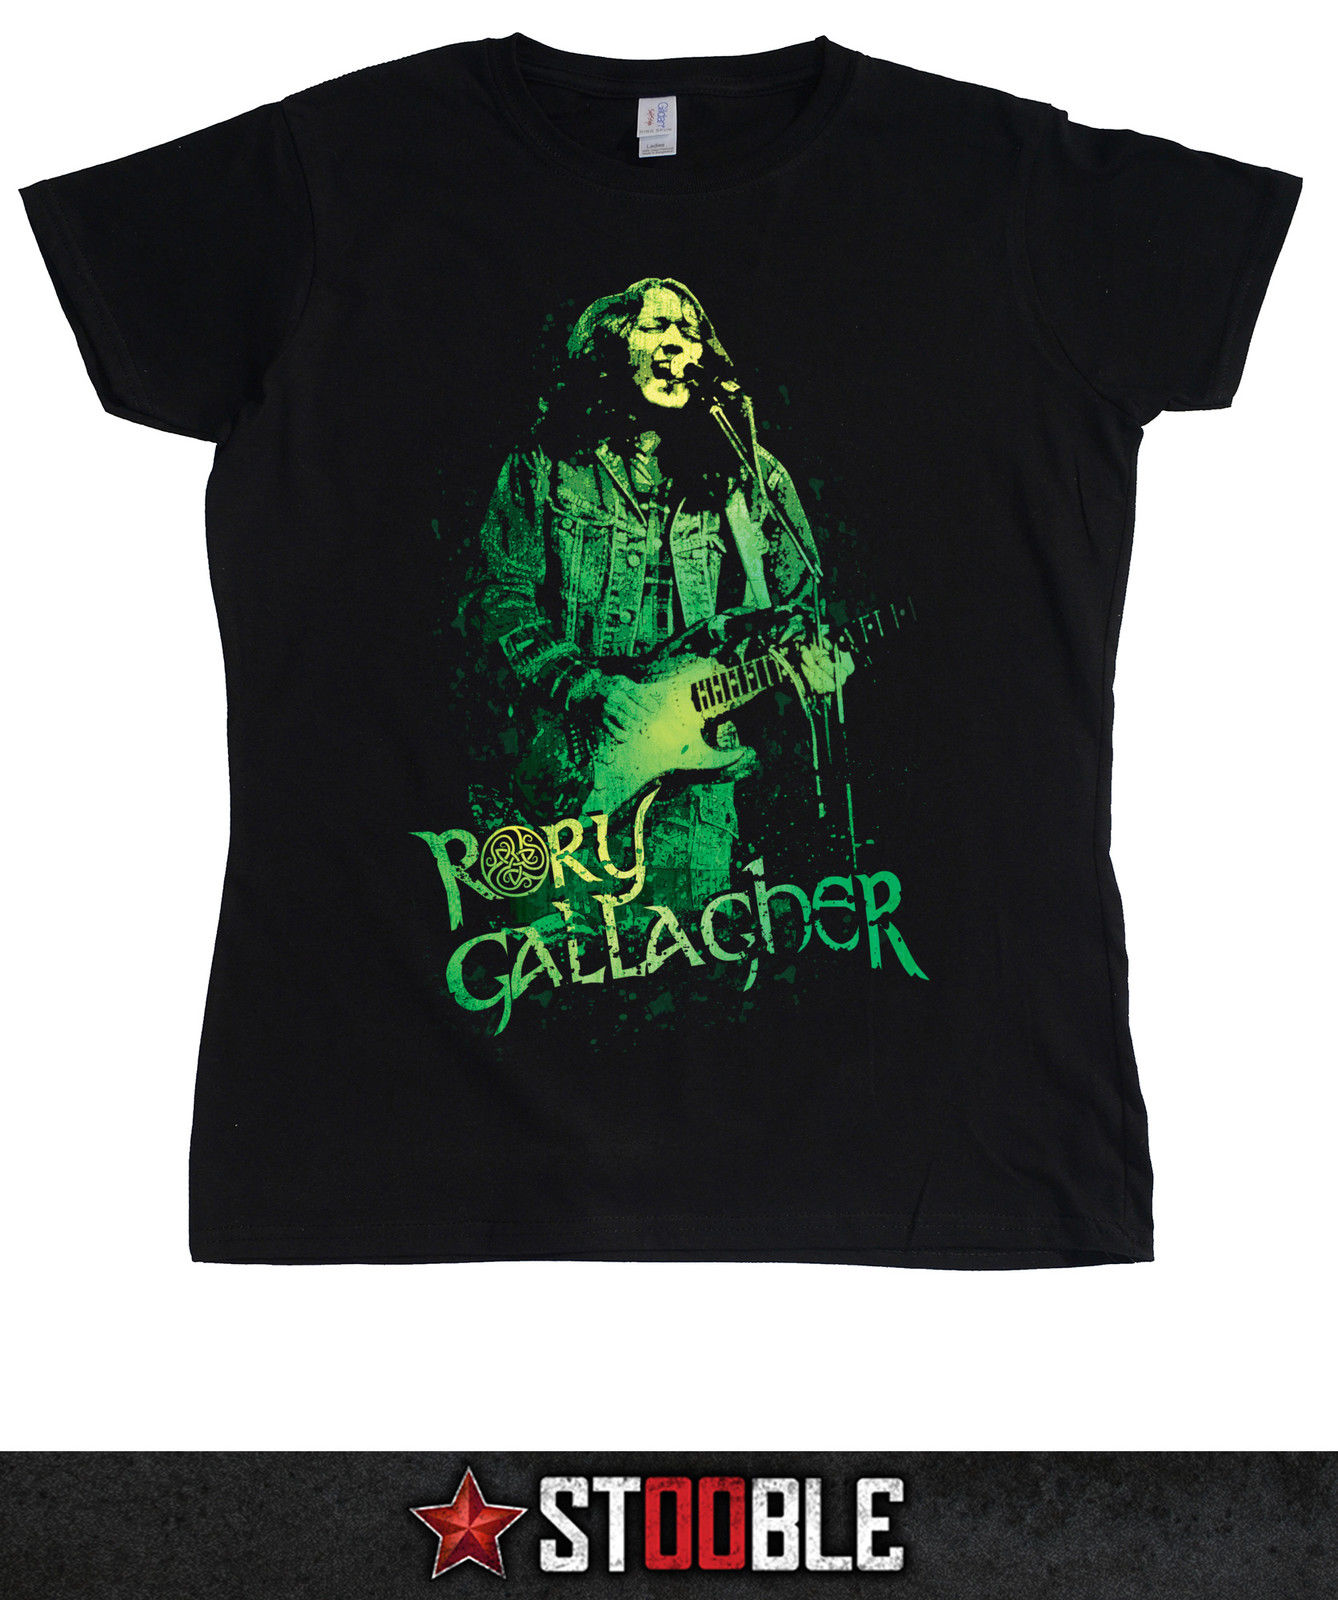 Direct from Stockist Rory Gallagher 82 T-Shirt